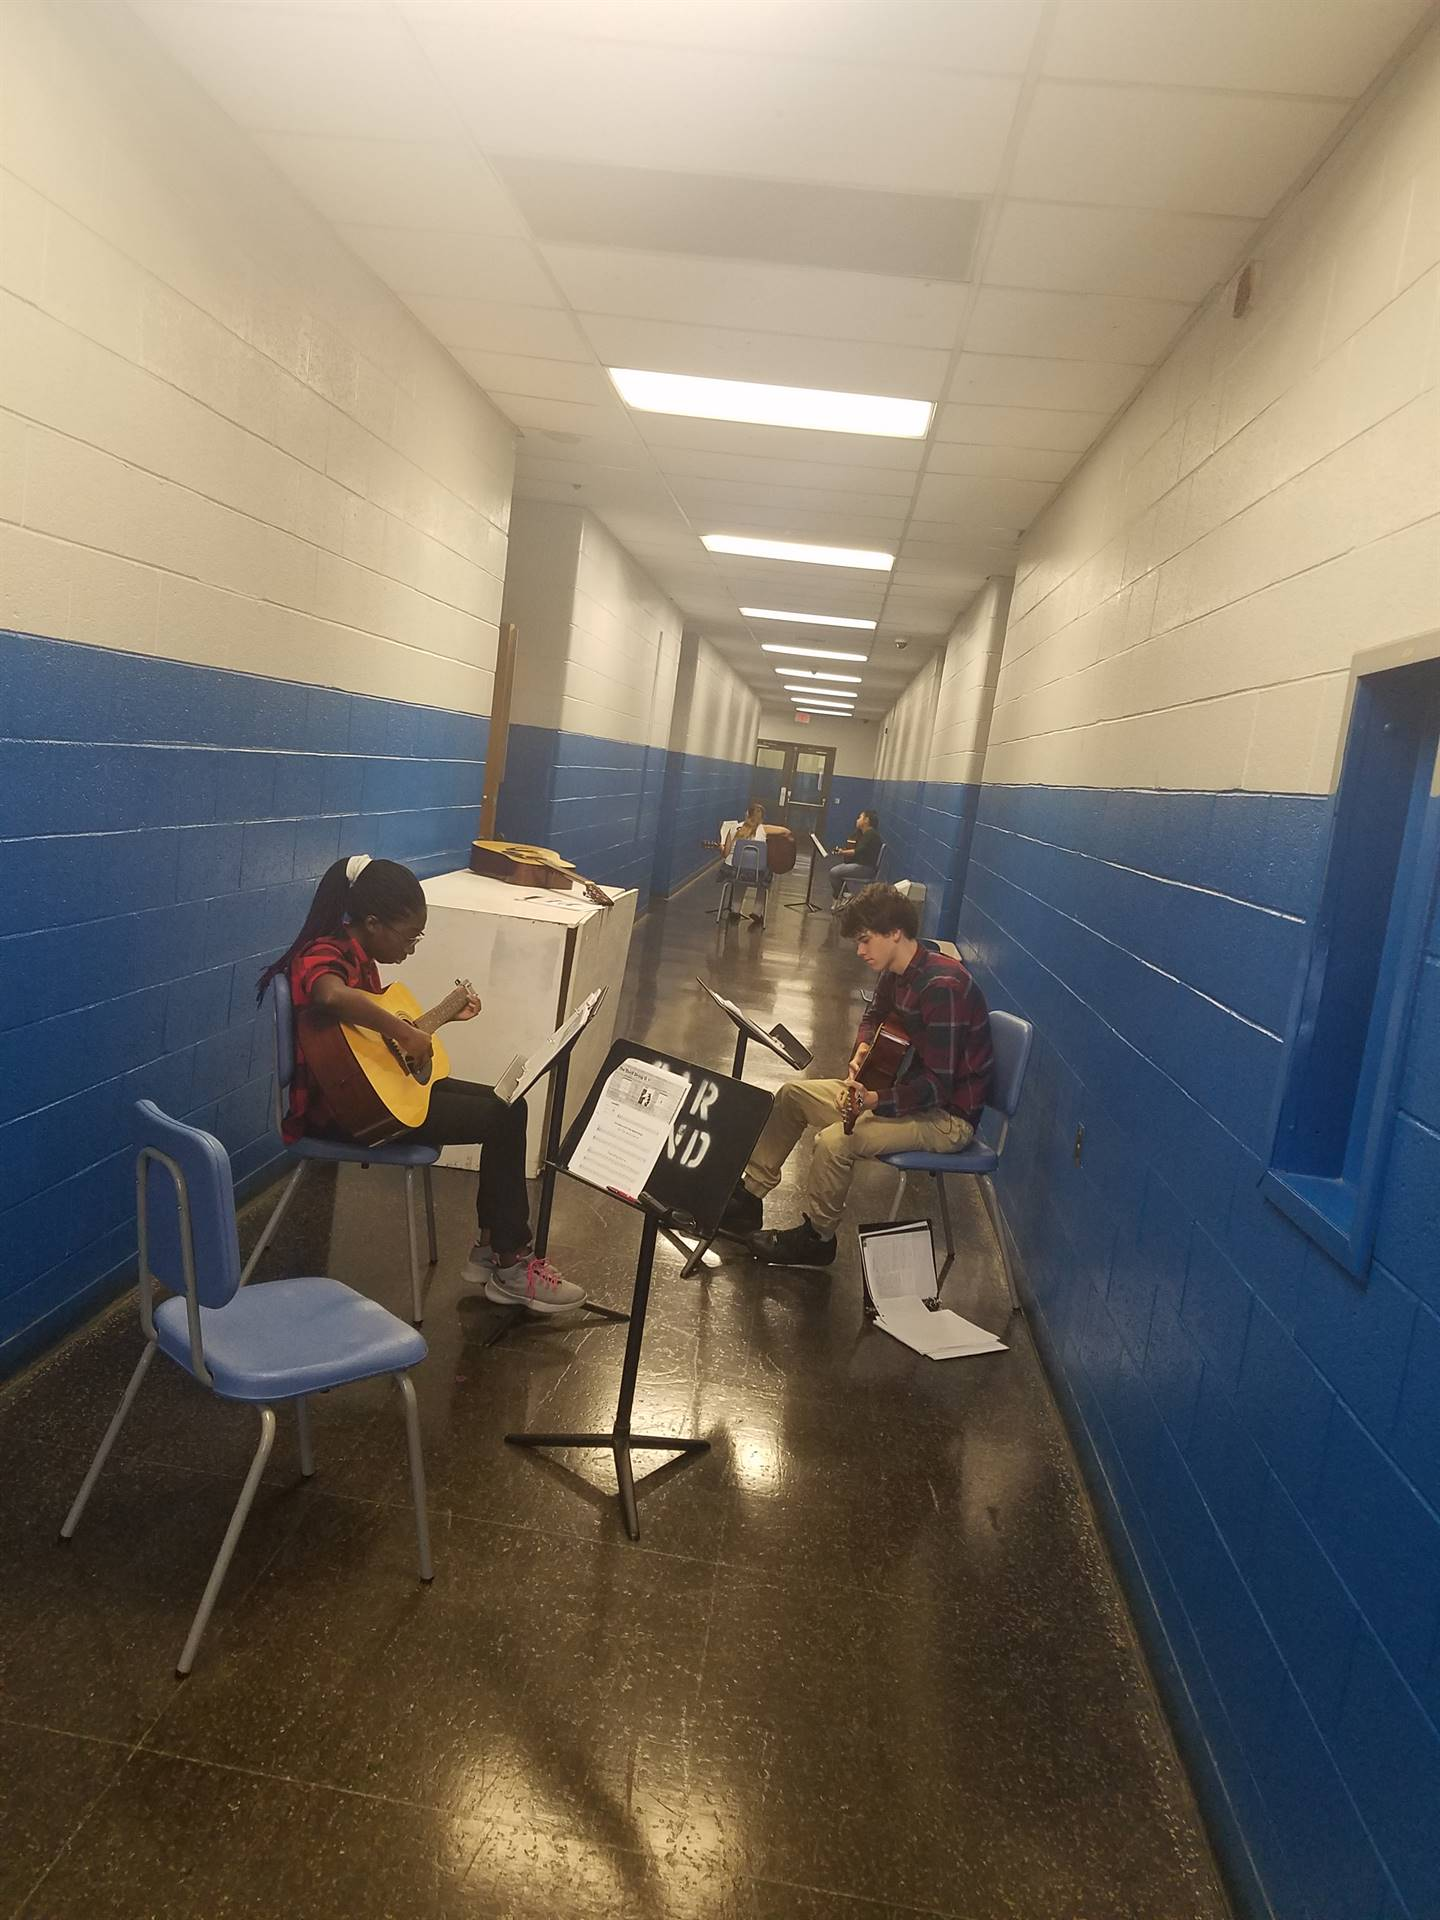 WBASD CAPAA Music Students Working Together on Practice Day